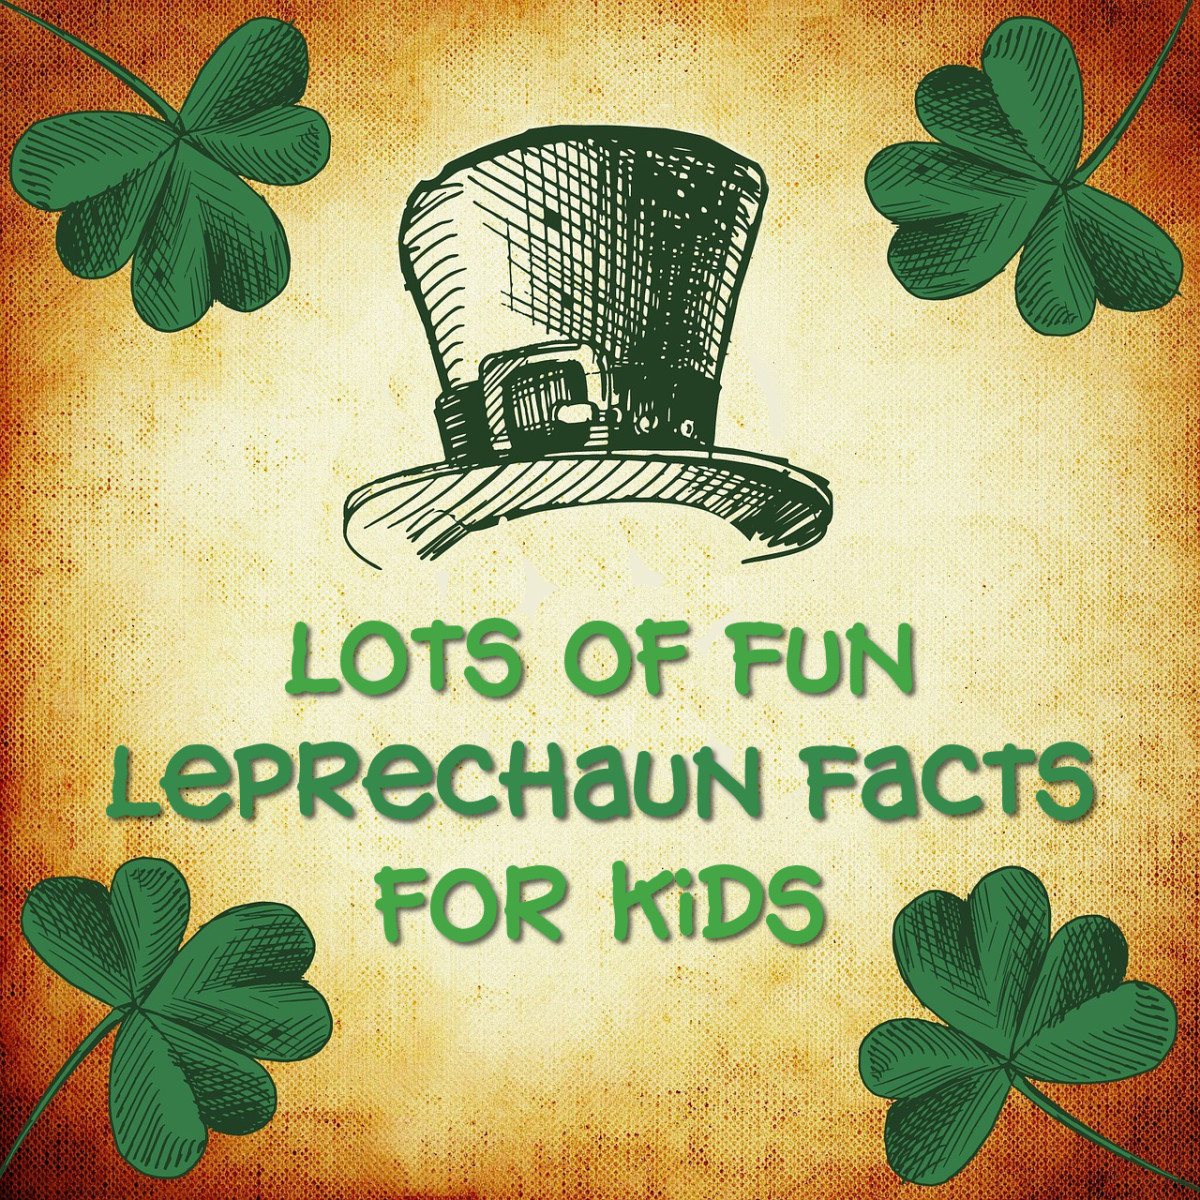 Lots of Fun Leprechaun Facts for Kids